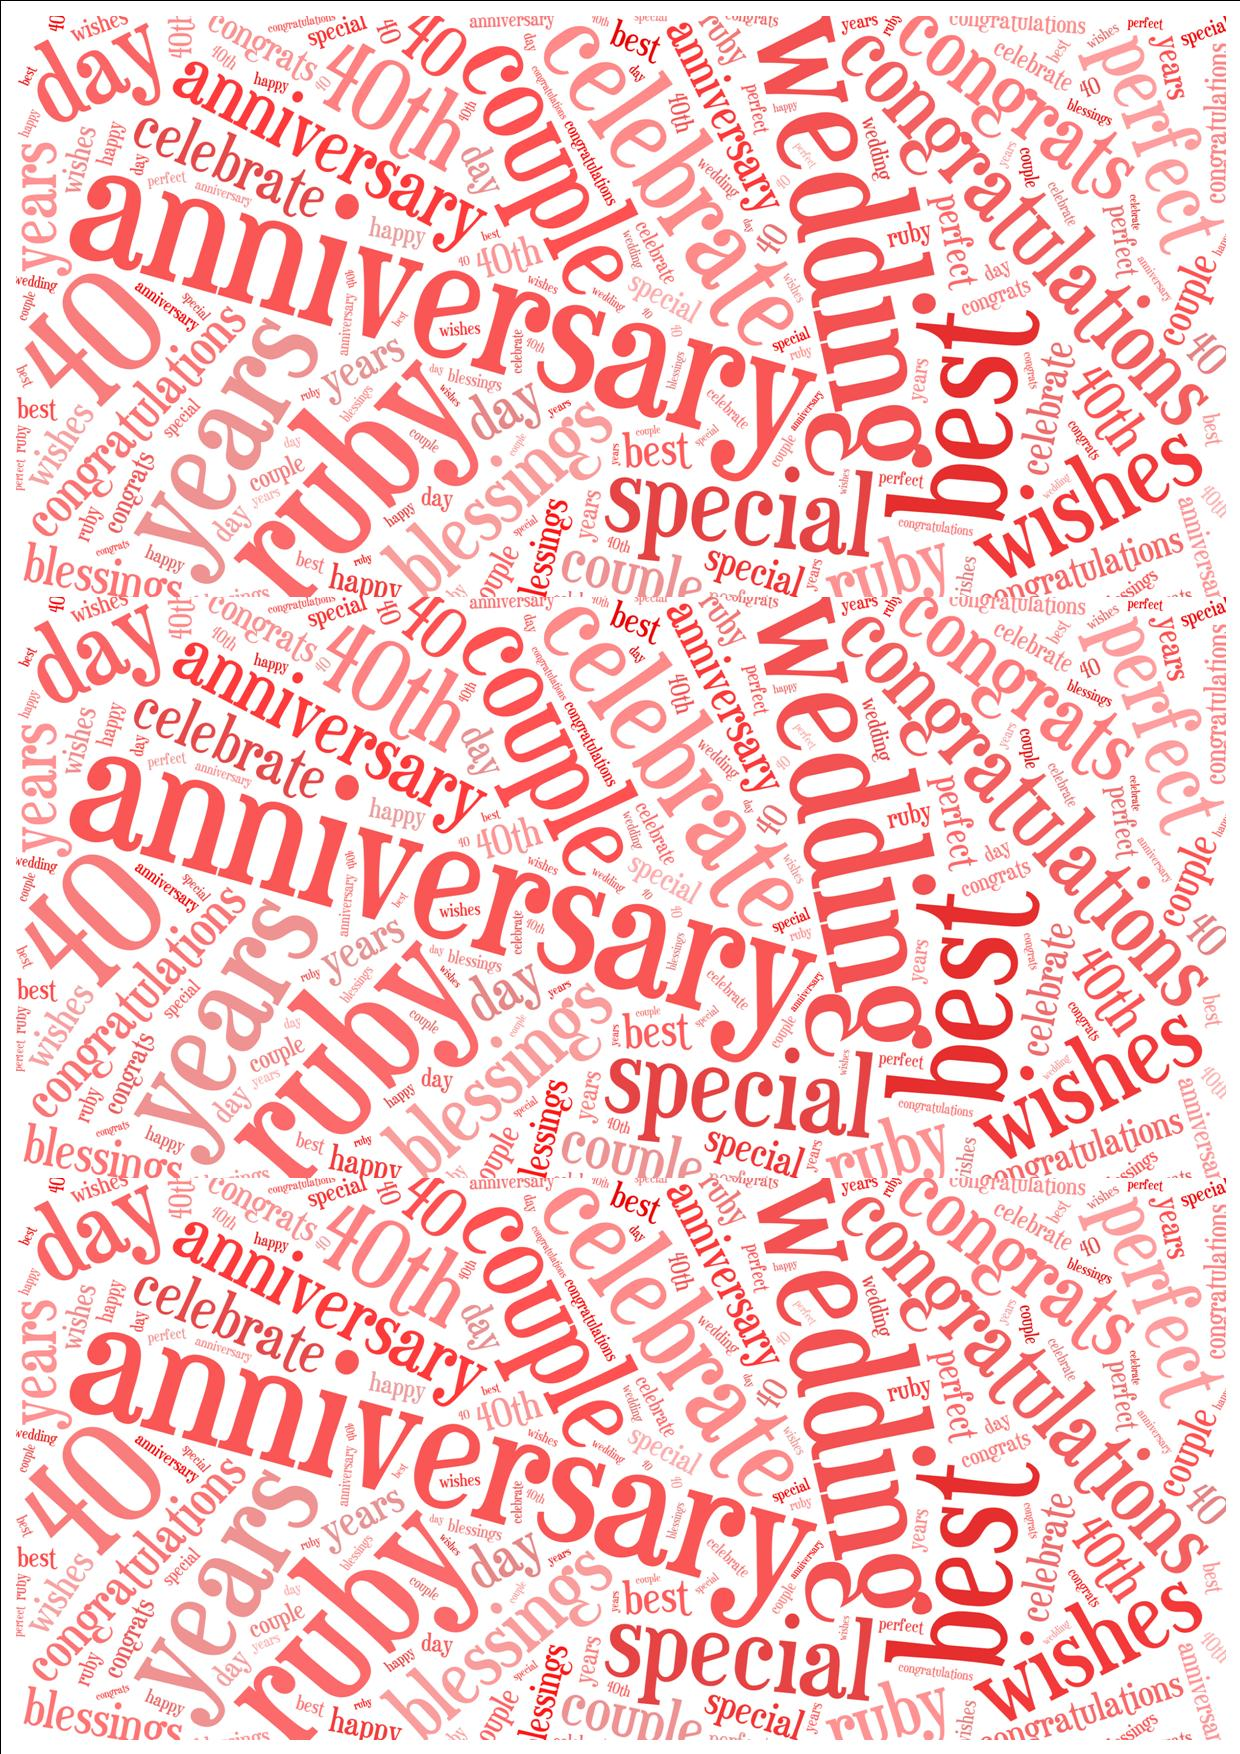 Word 2013 Anniversary Card